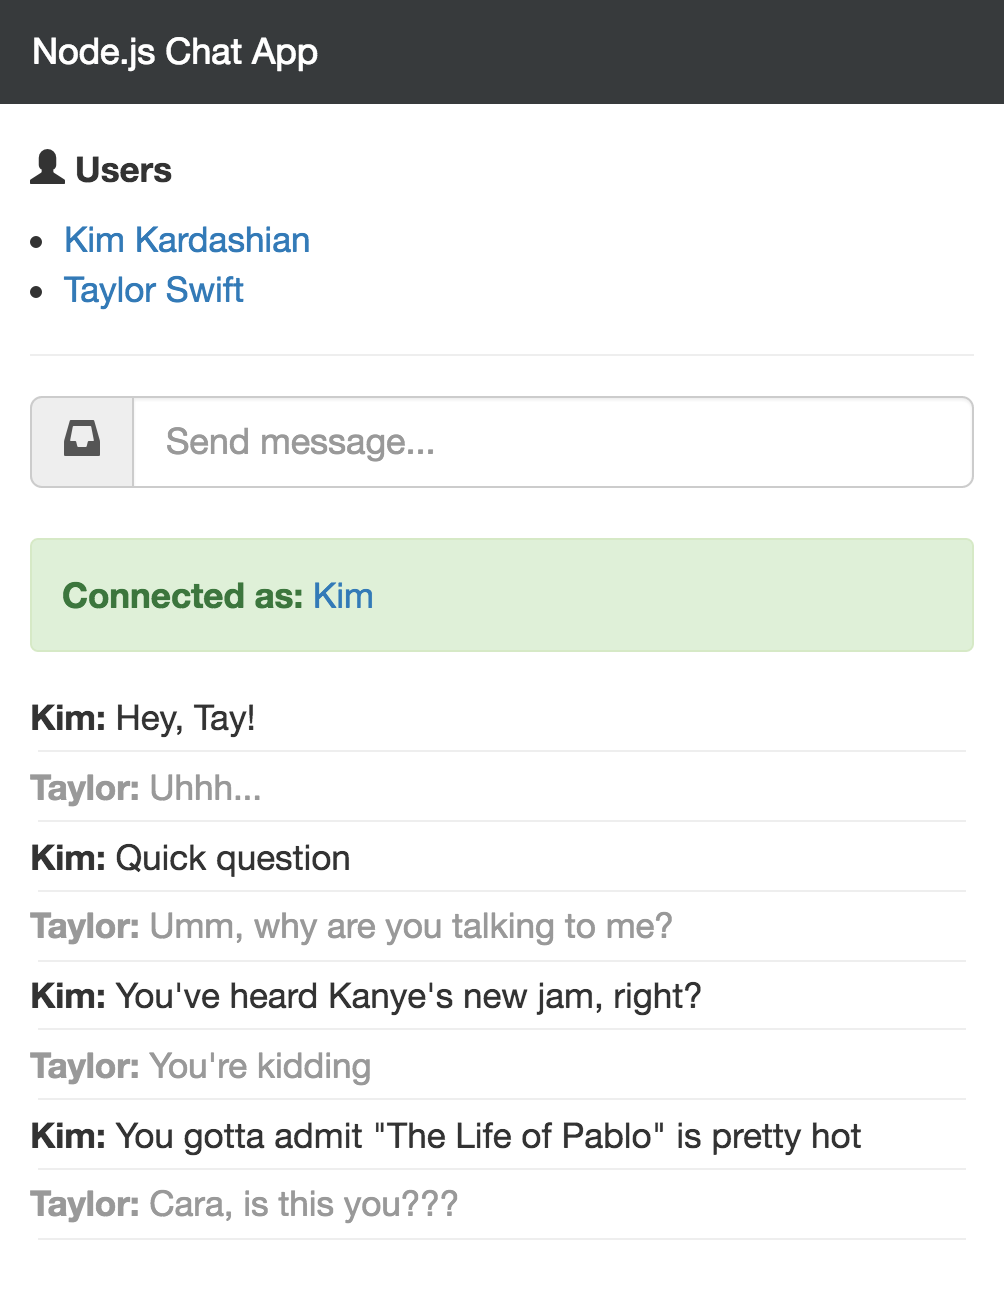 image of Node.js chat app